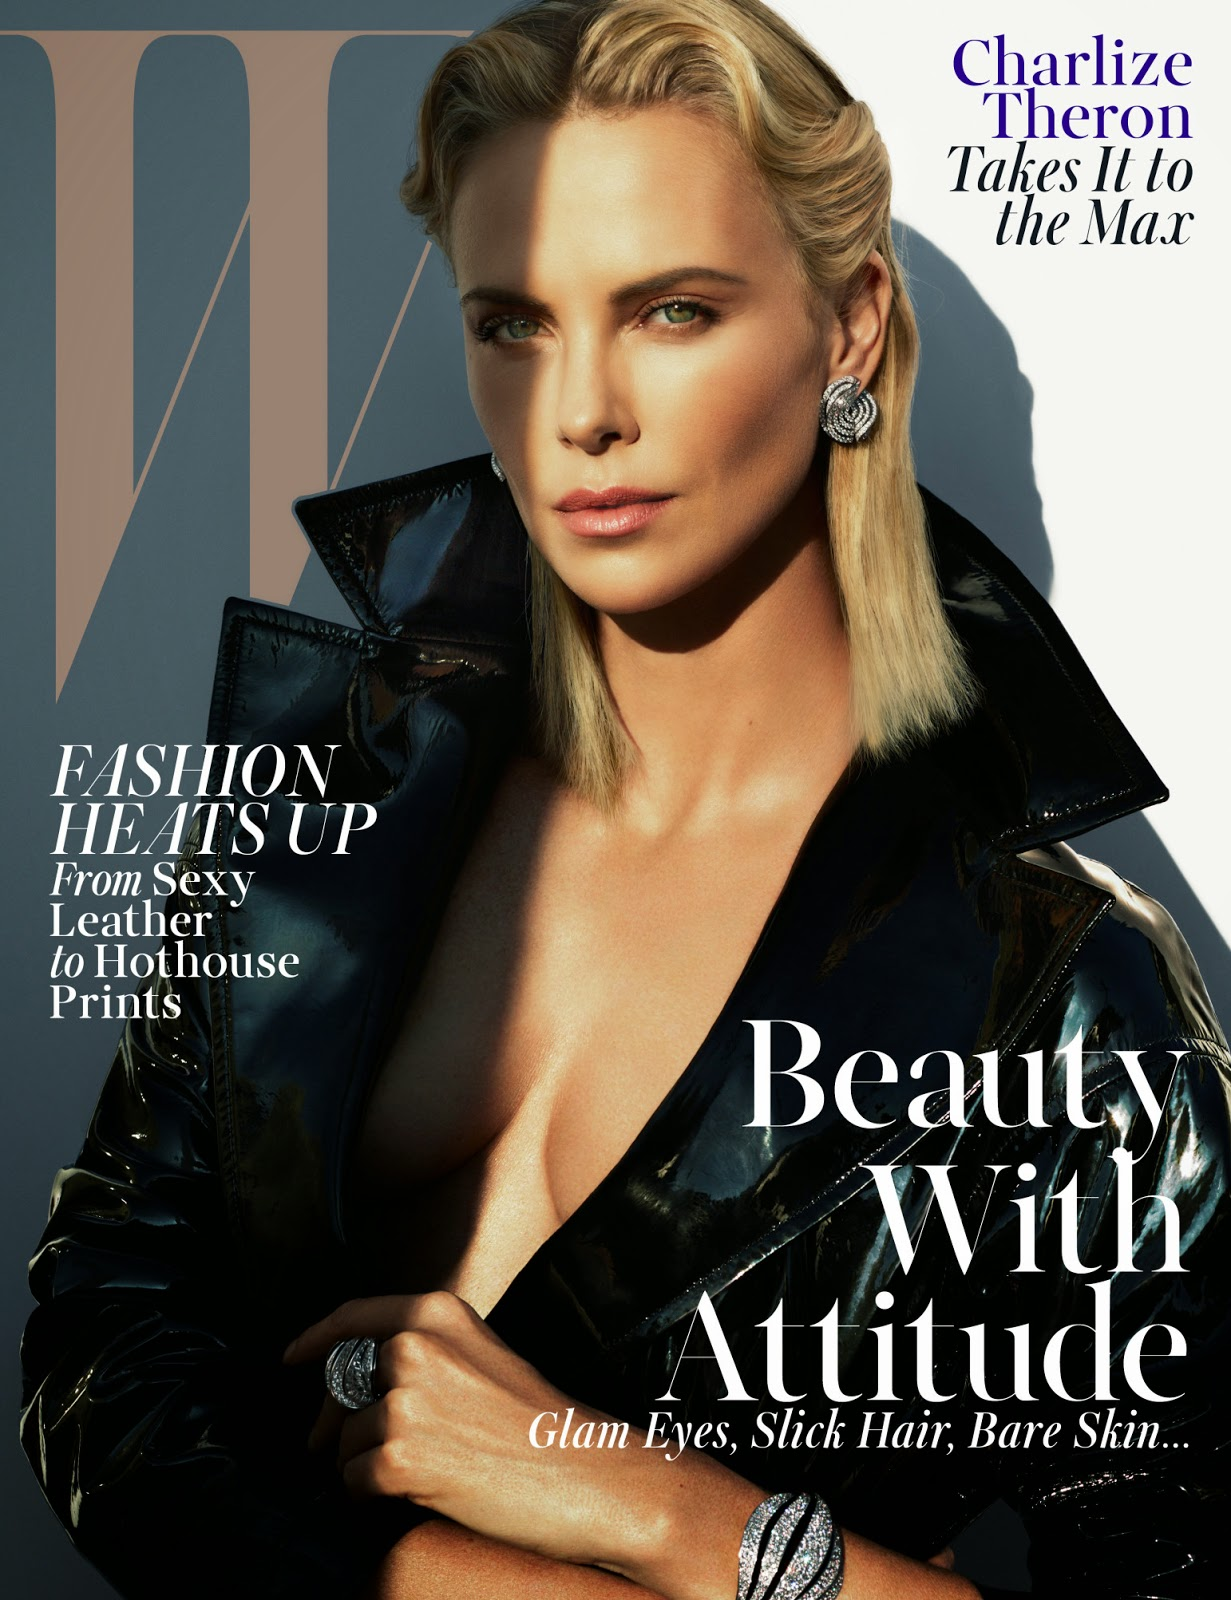 Actress @ Charlize Theron - W Magazine May 2015